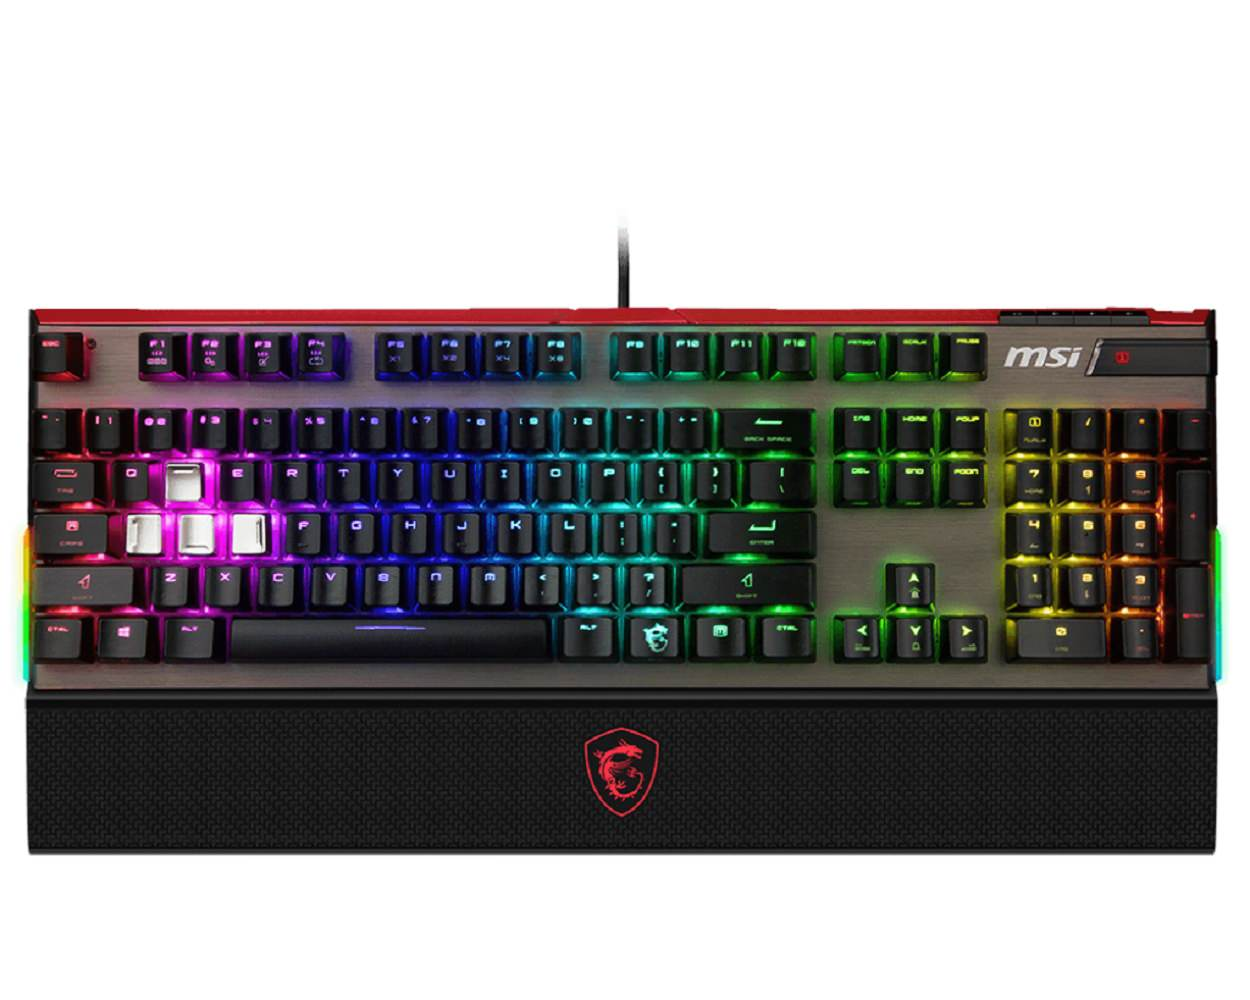 MSI VIGOR GK80 RED Gaming Keyboard by MSI